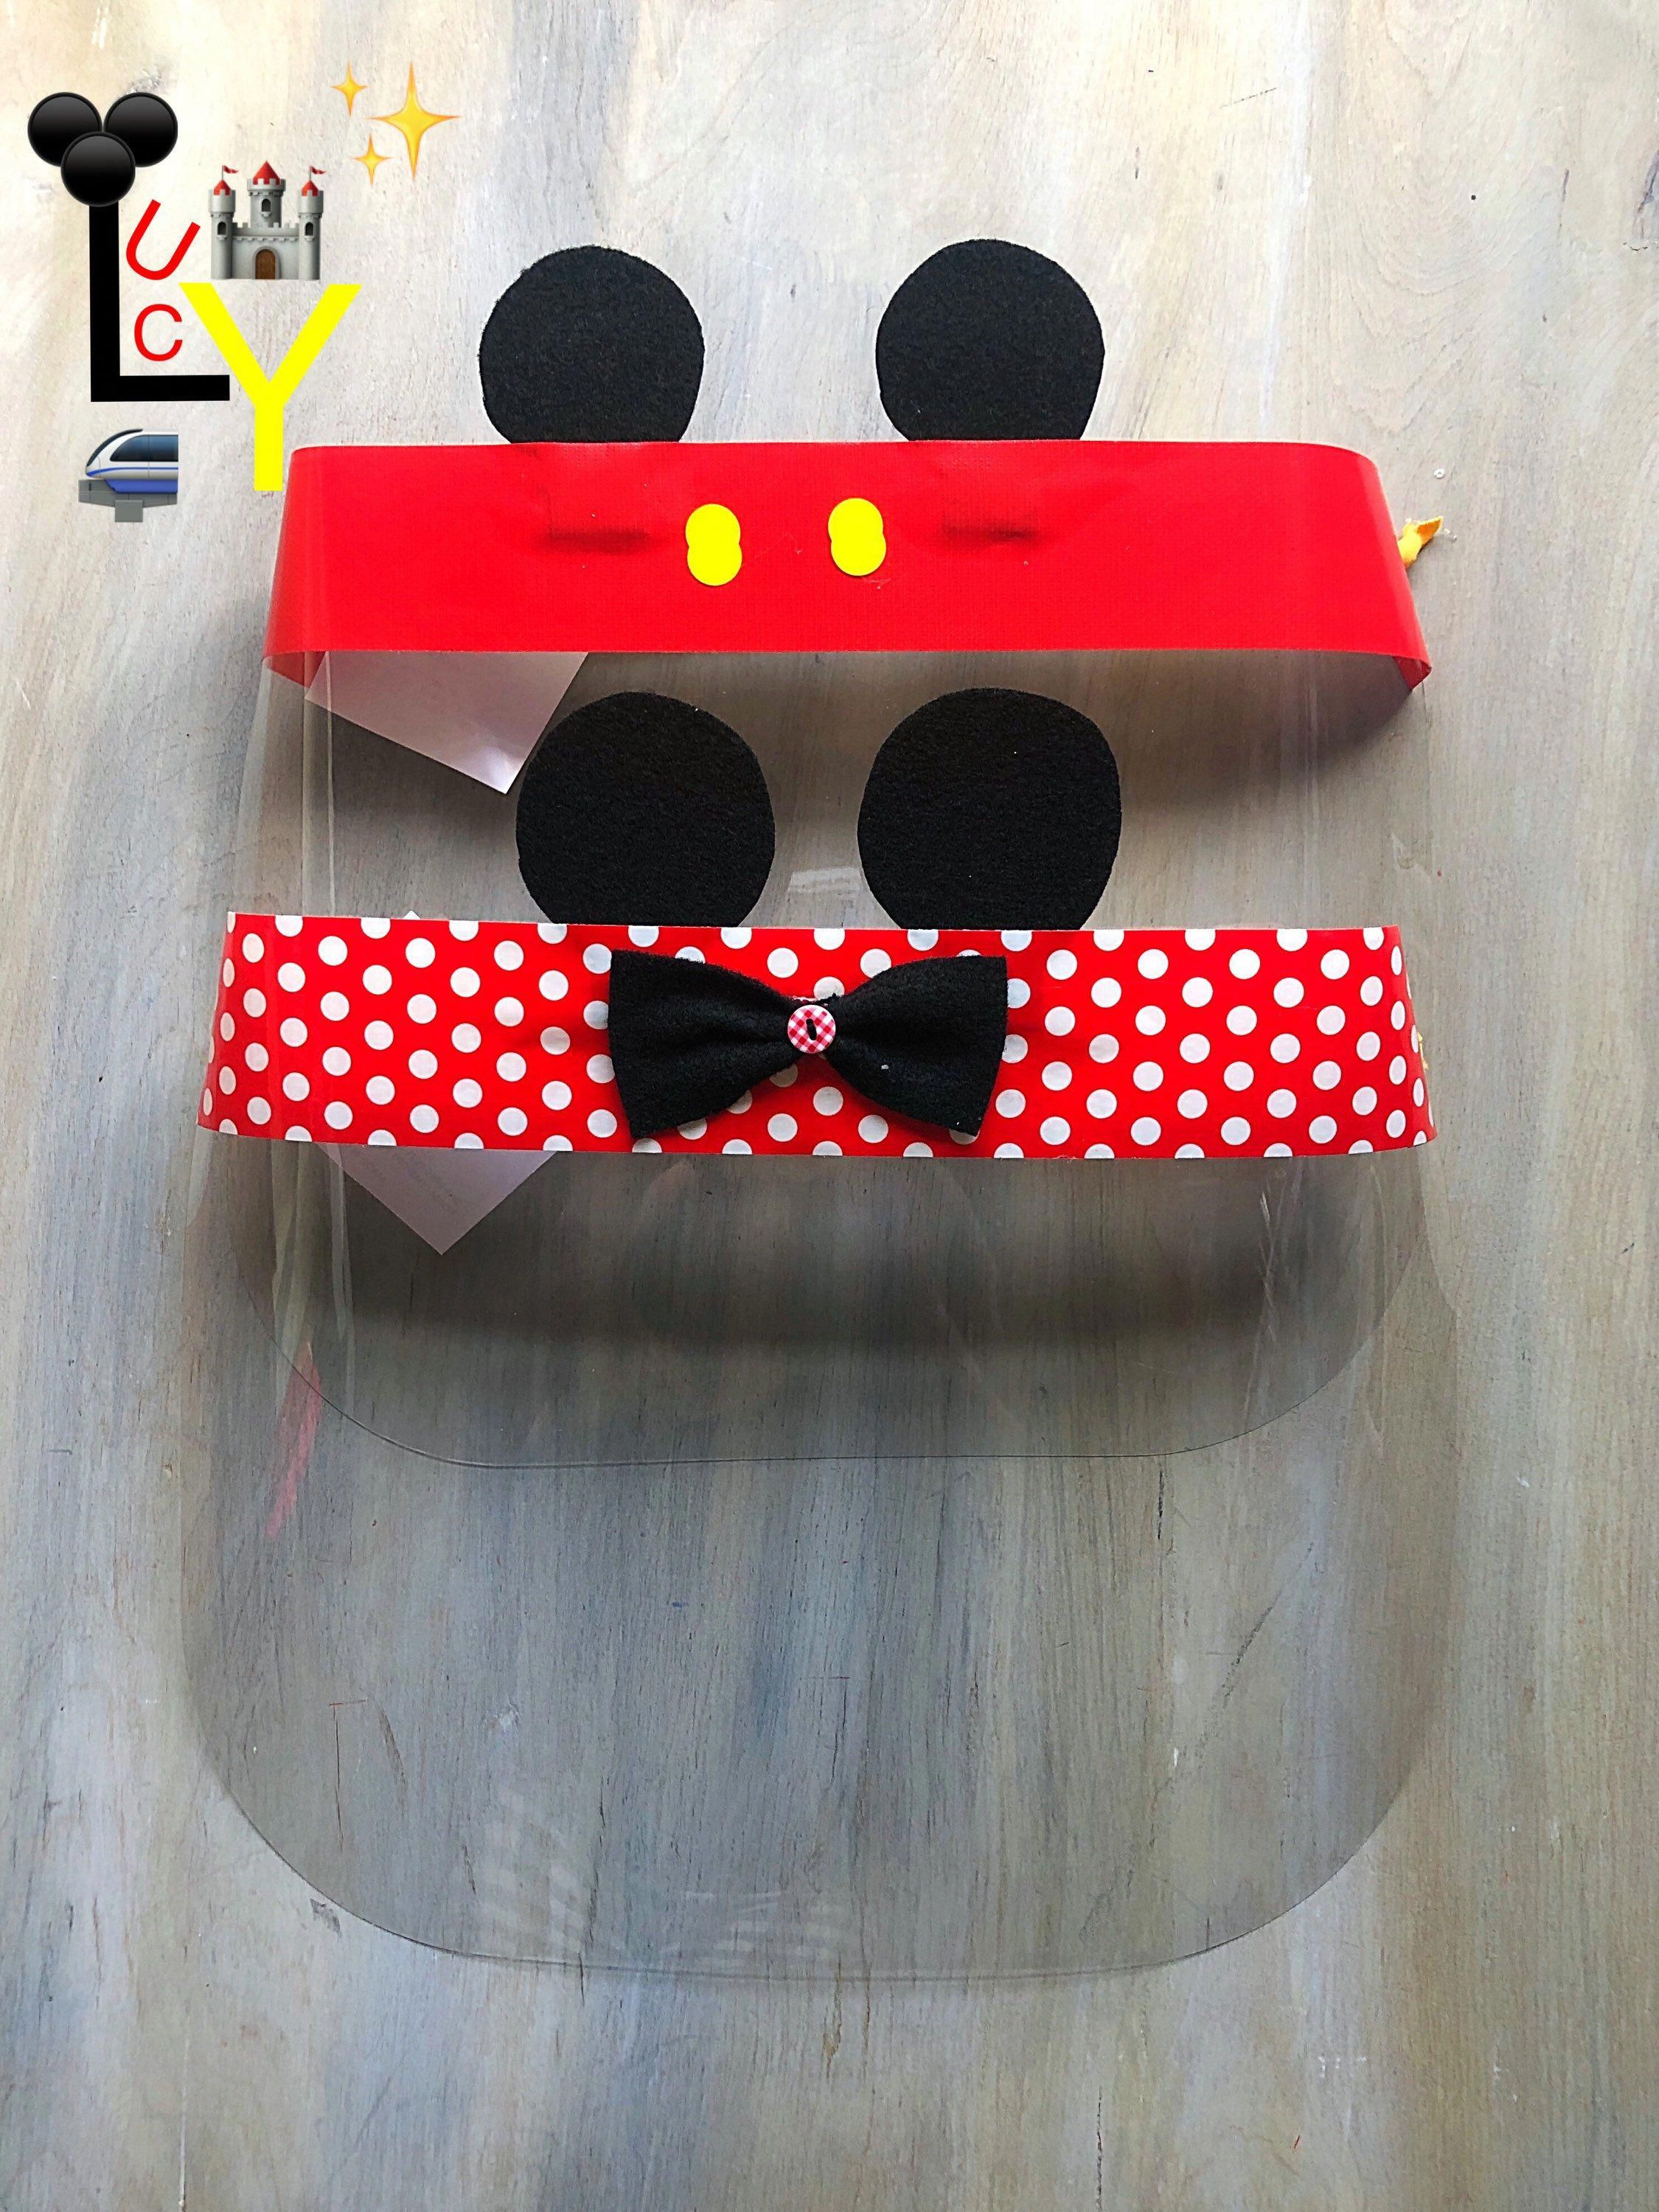 kn95 face mask pattern in 2020 Face shield, Mask for